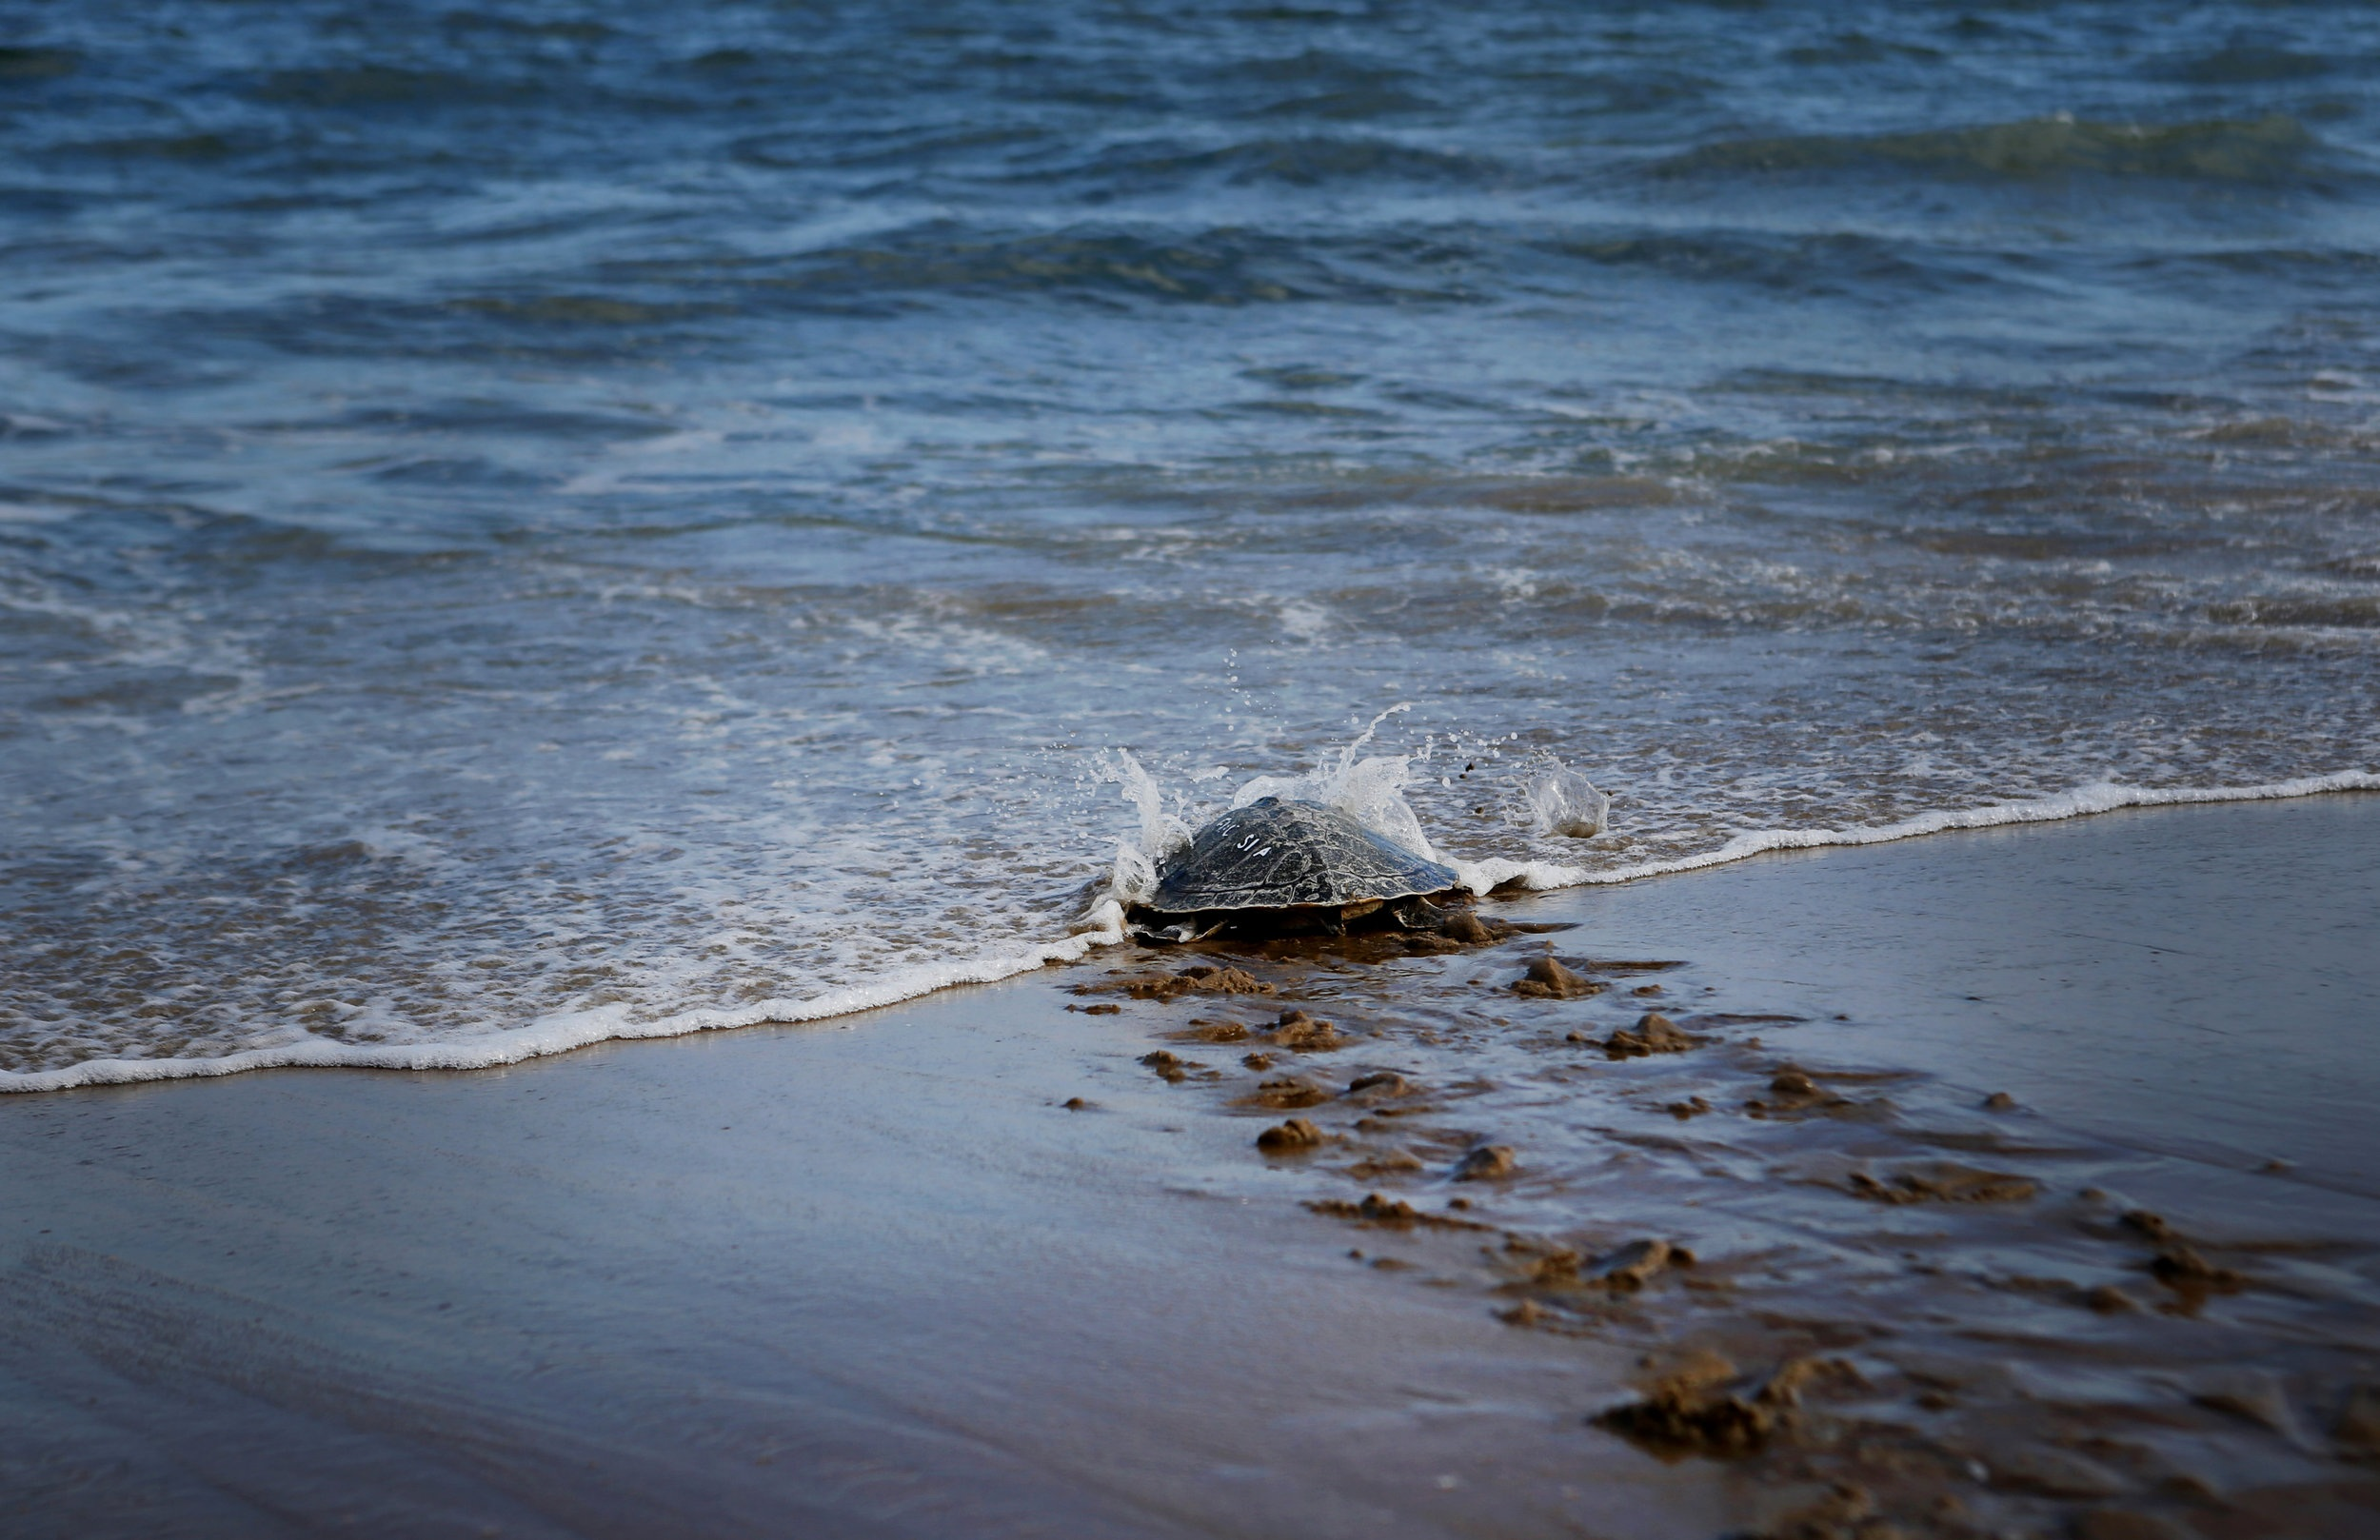 'Indigo', a juvenile sea turtle that was hooked by a recreational angler at Lynnhaven Pier on October 14, 2017, makes its way back into the ocean after being rehabilitated by the Virginia Aquarium Stranding Response Team.